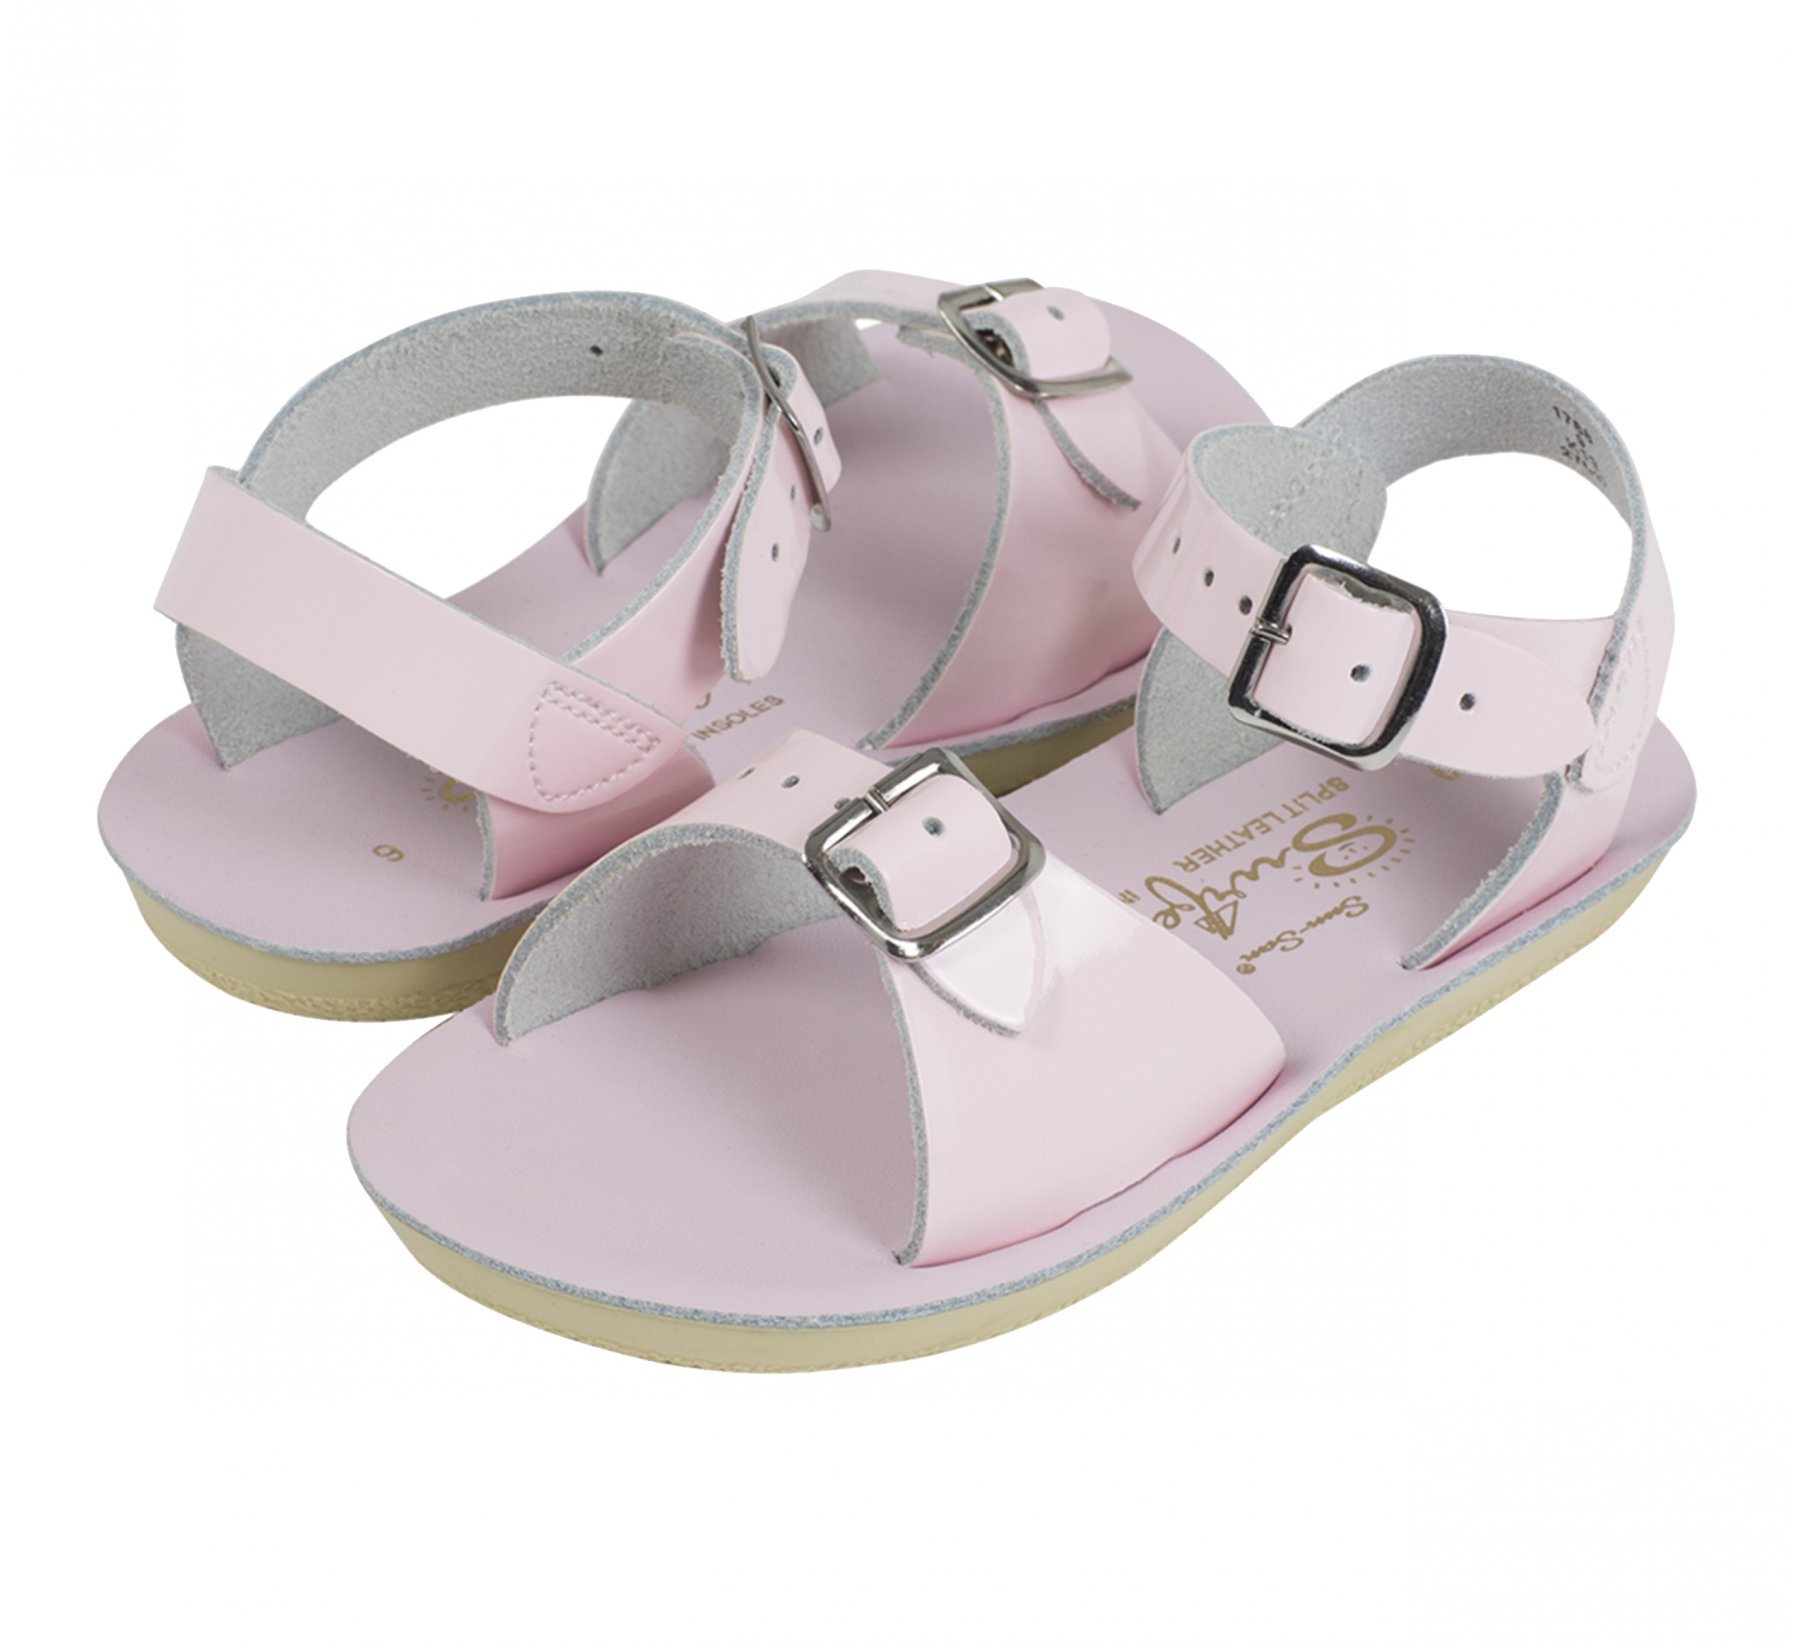 Surfer Shiny Pink  - Salt Water Sandals